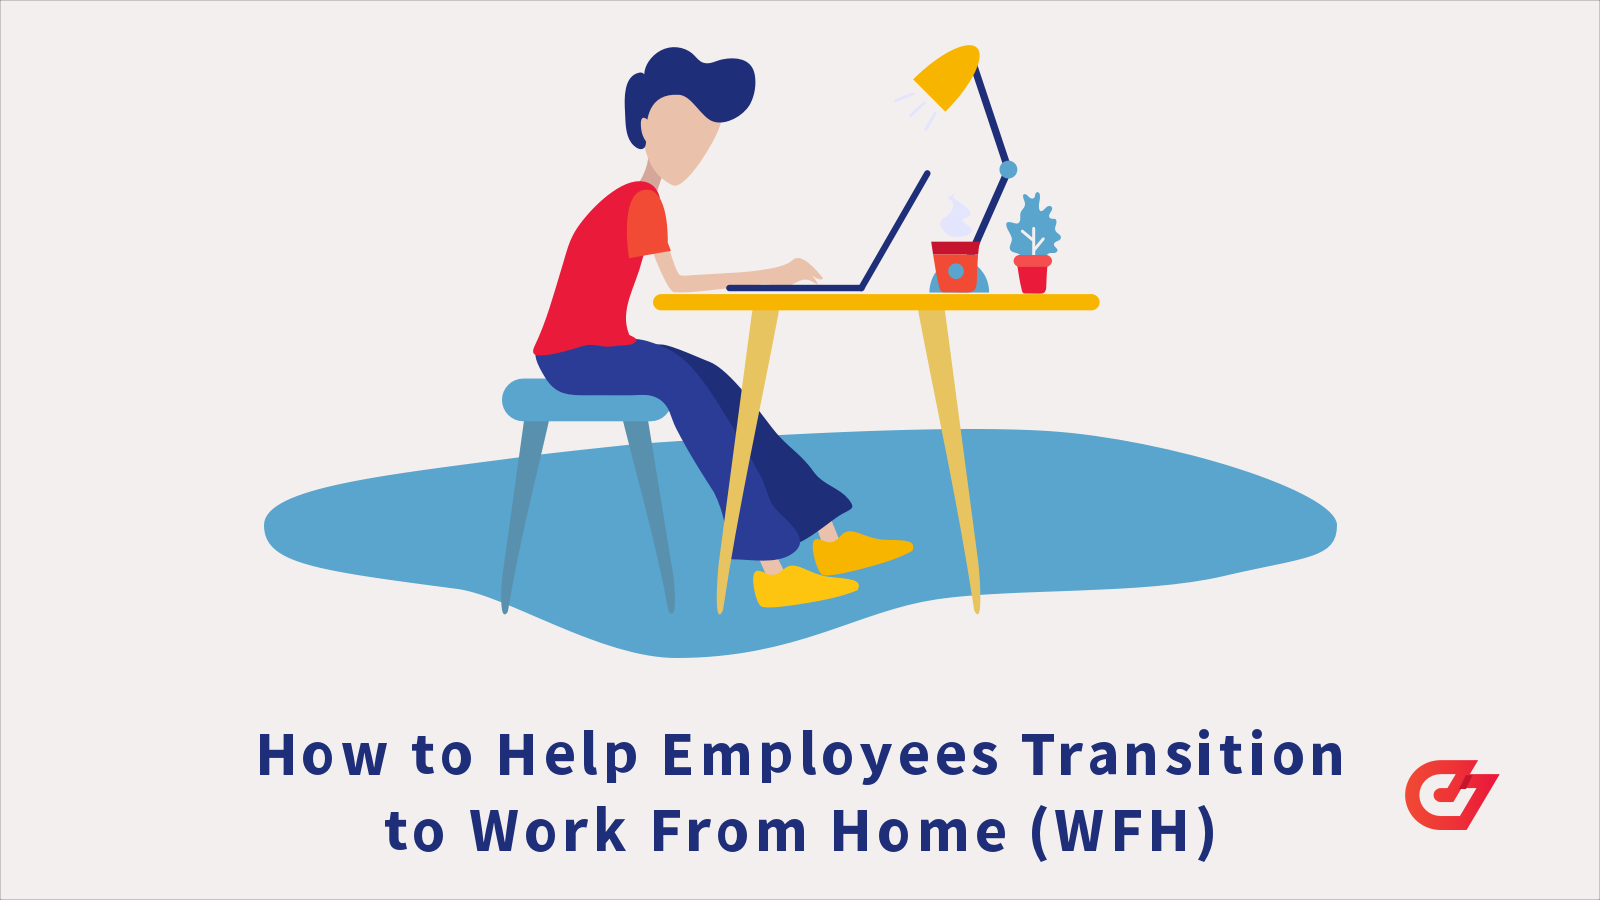 How to Help Employees Transition to Work From Home (WFH)